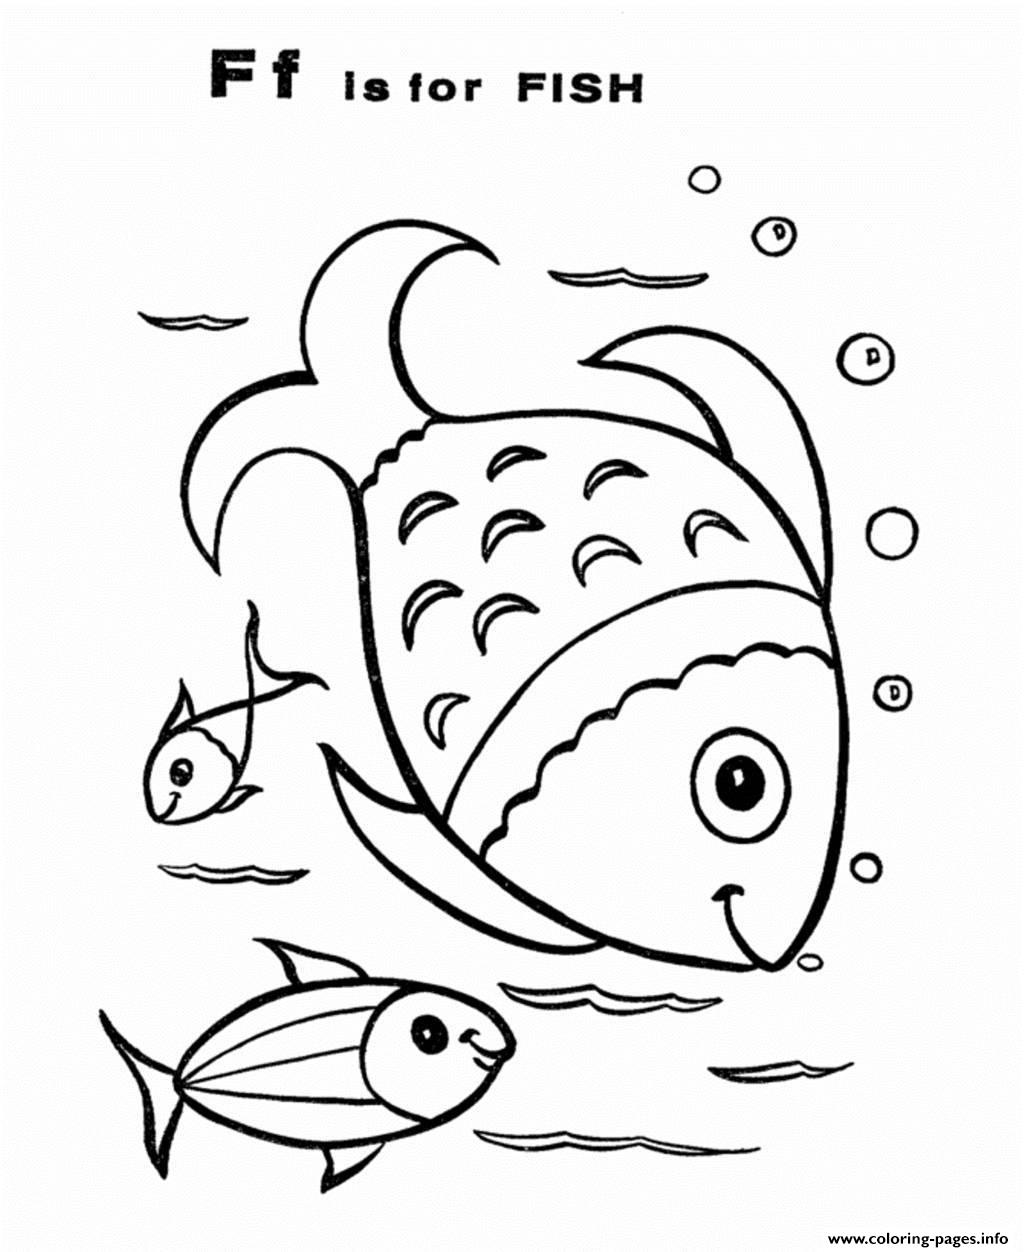 Fish Free Alphabet S1fc1 Coloring Pages Printable